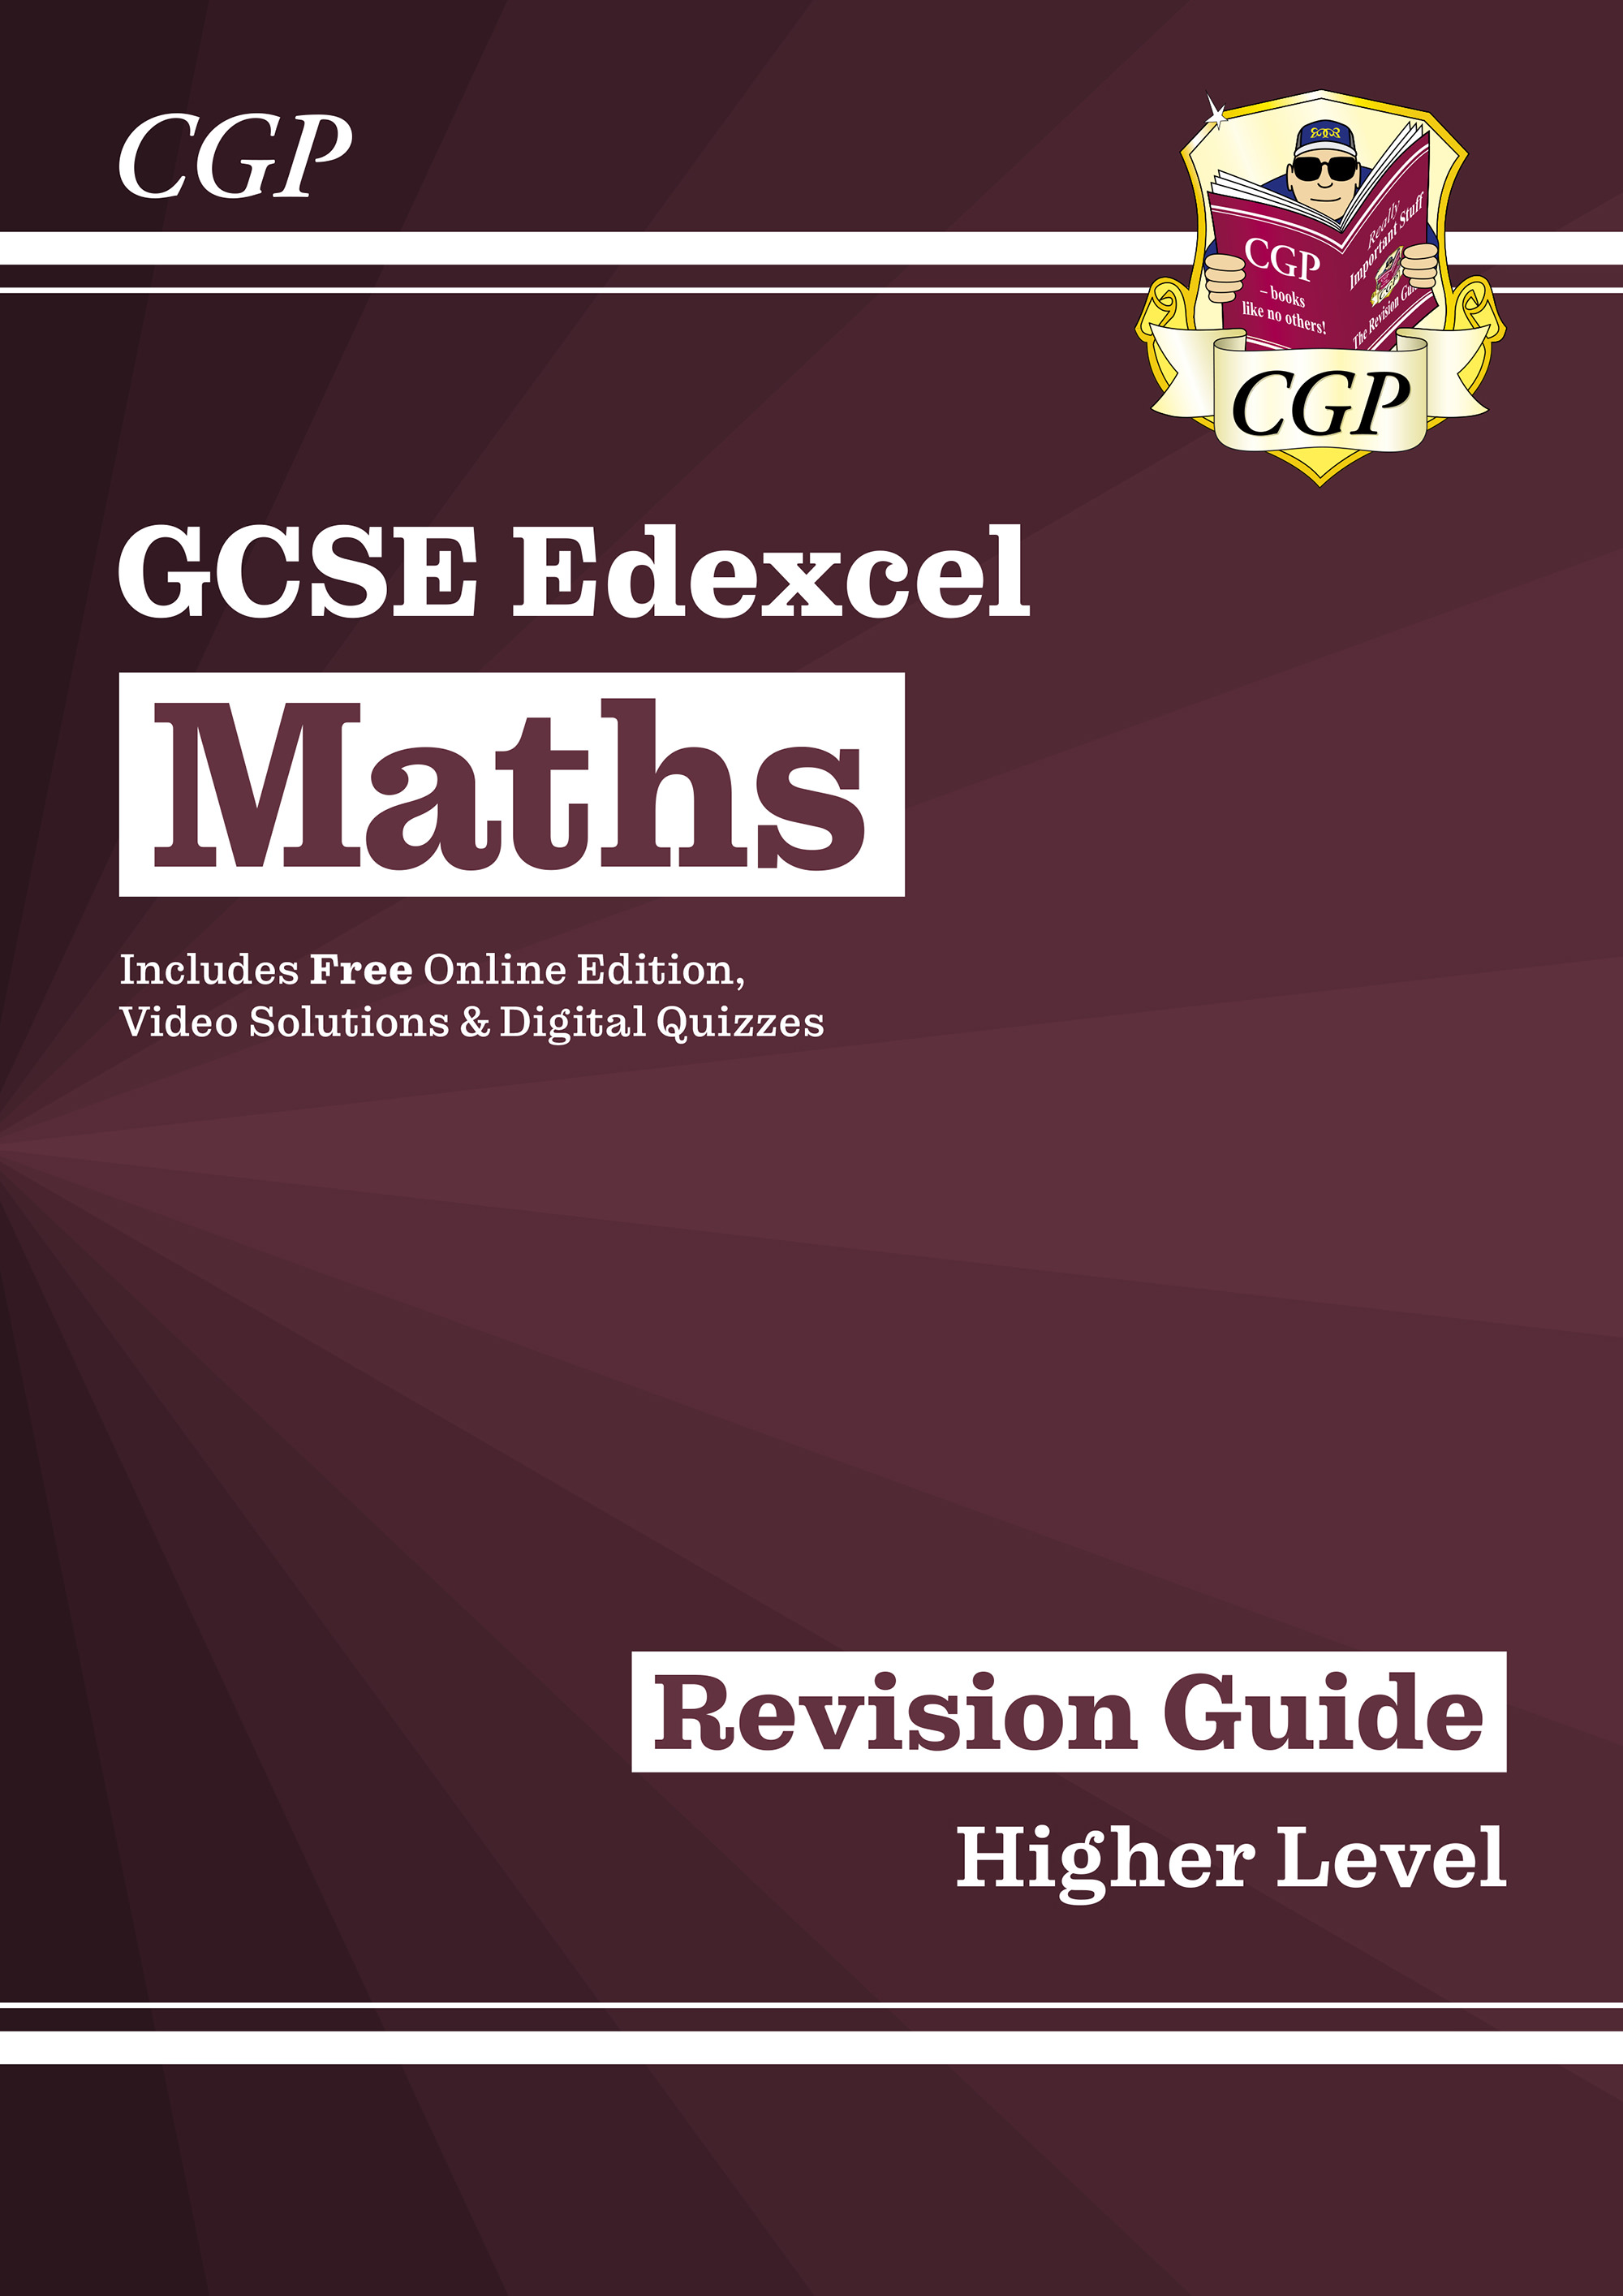 MXHR47D - New 2021 GCSE Maths Edexcel Revision Guide: Higher Online Edition inc Videos & Quizzes